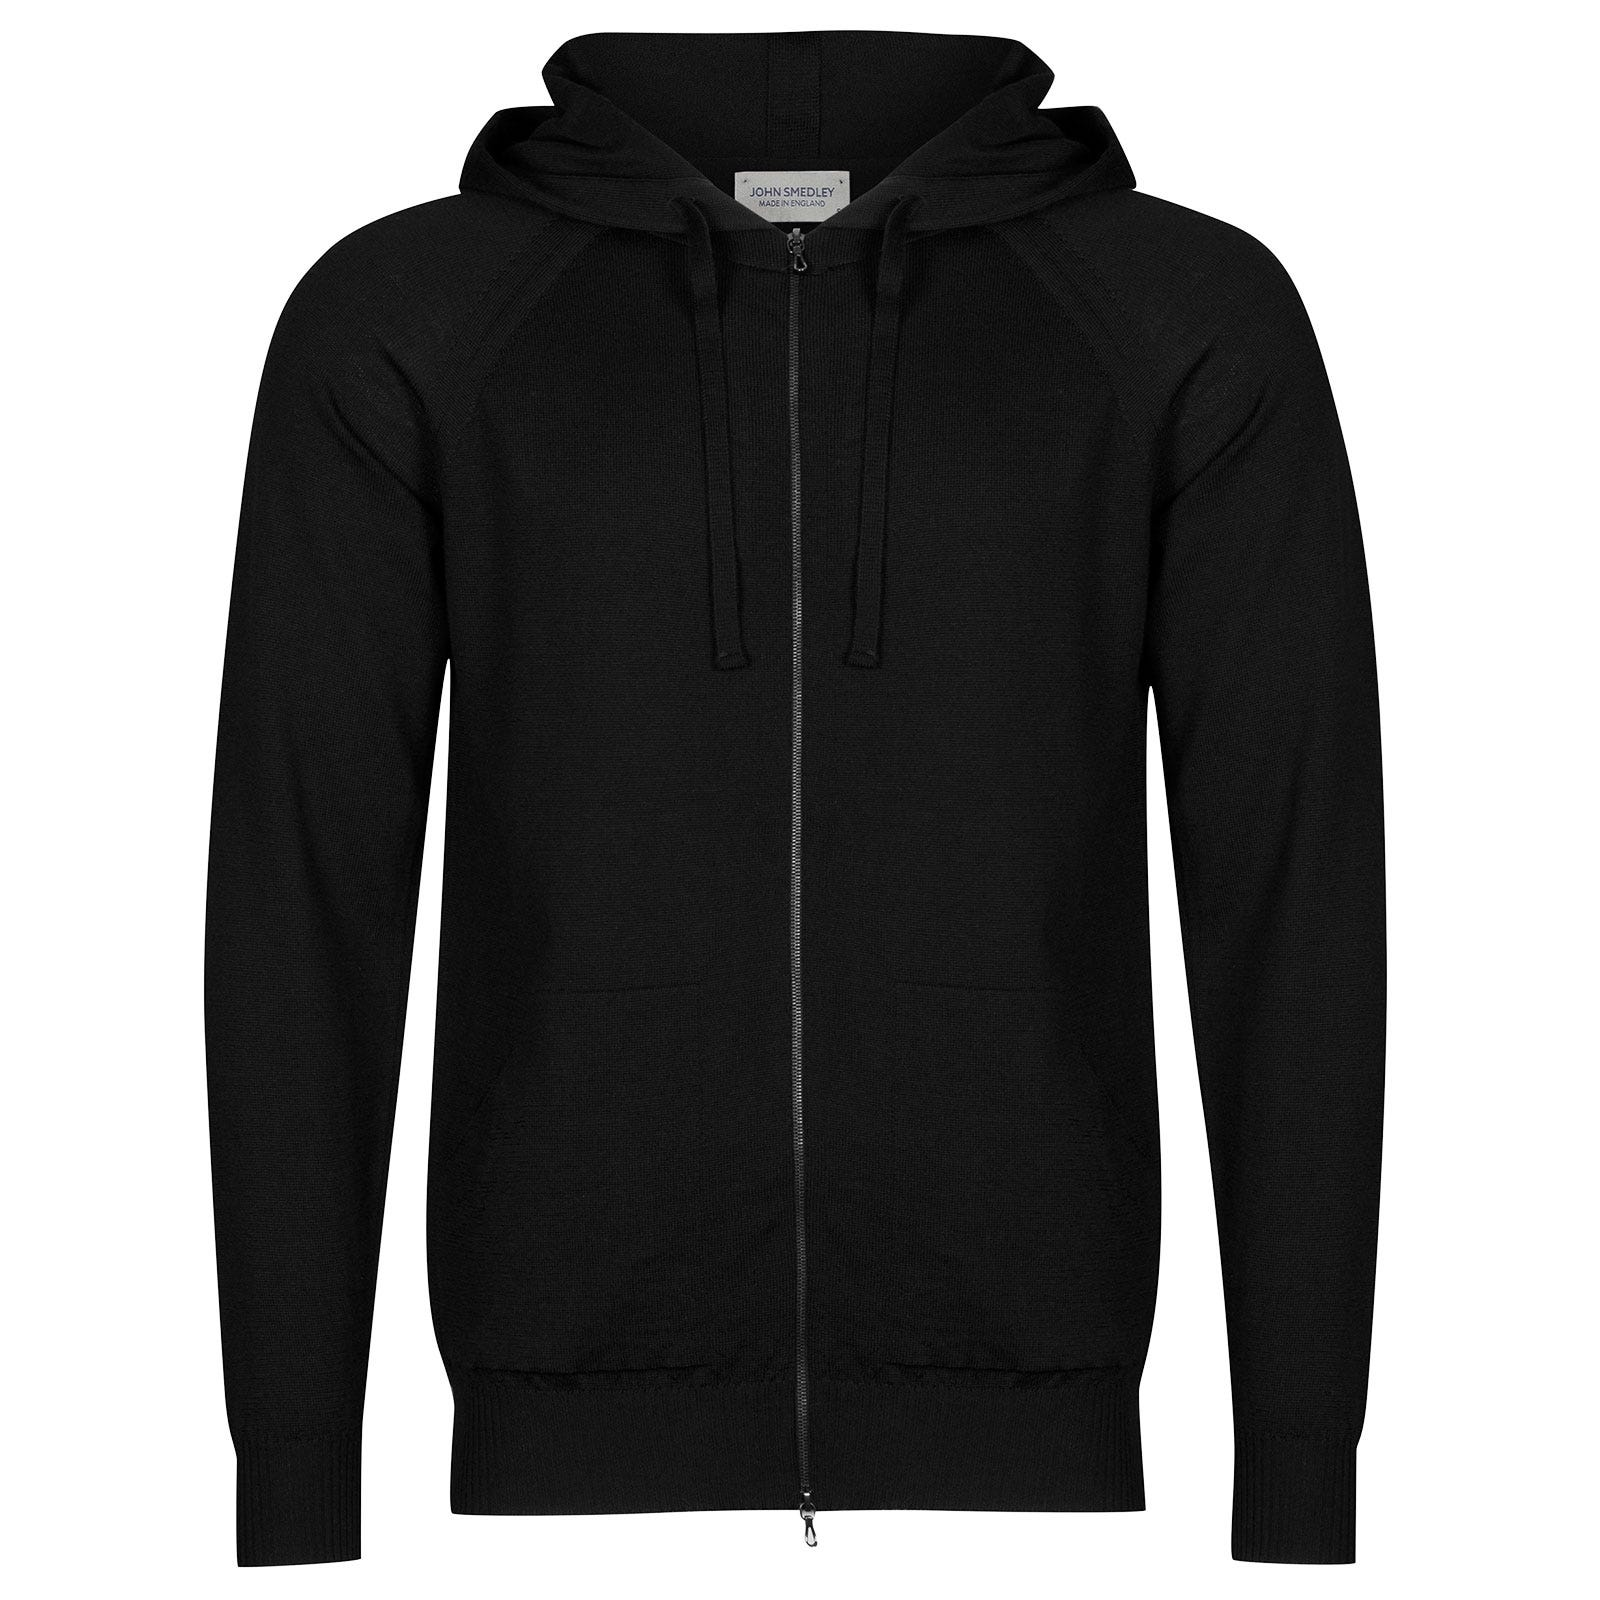 John Smedley Reservoir Merino Wool Jacket in Black-L